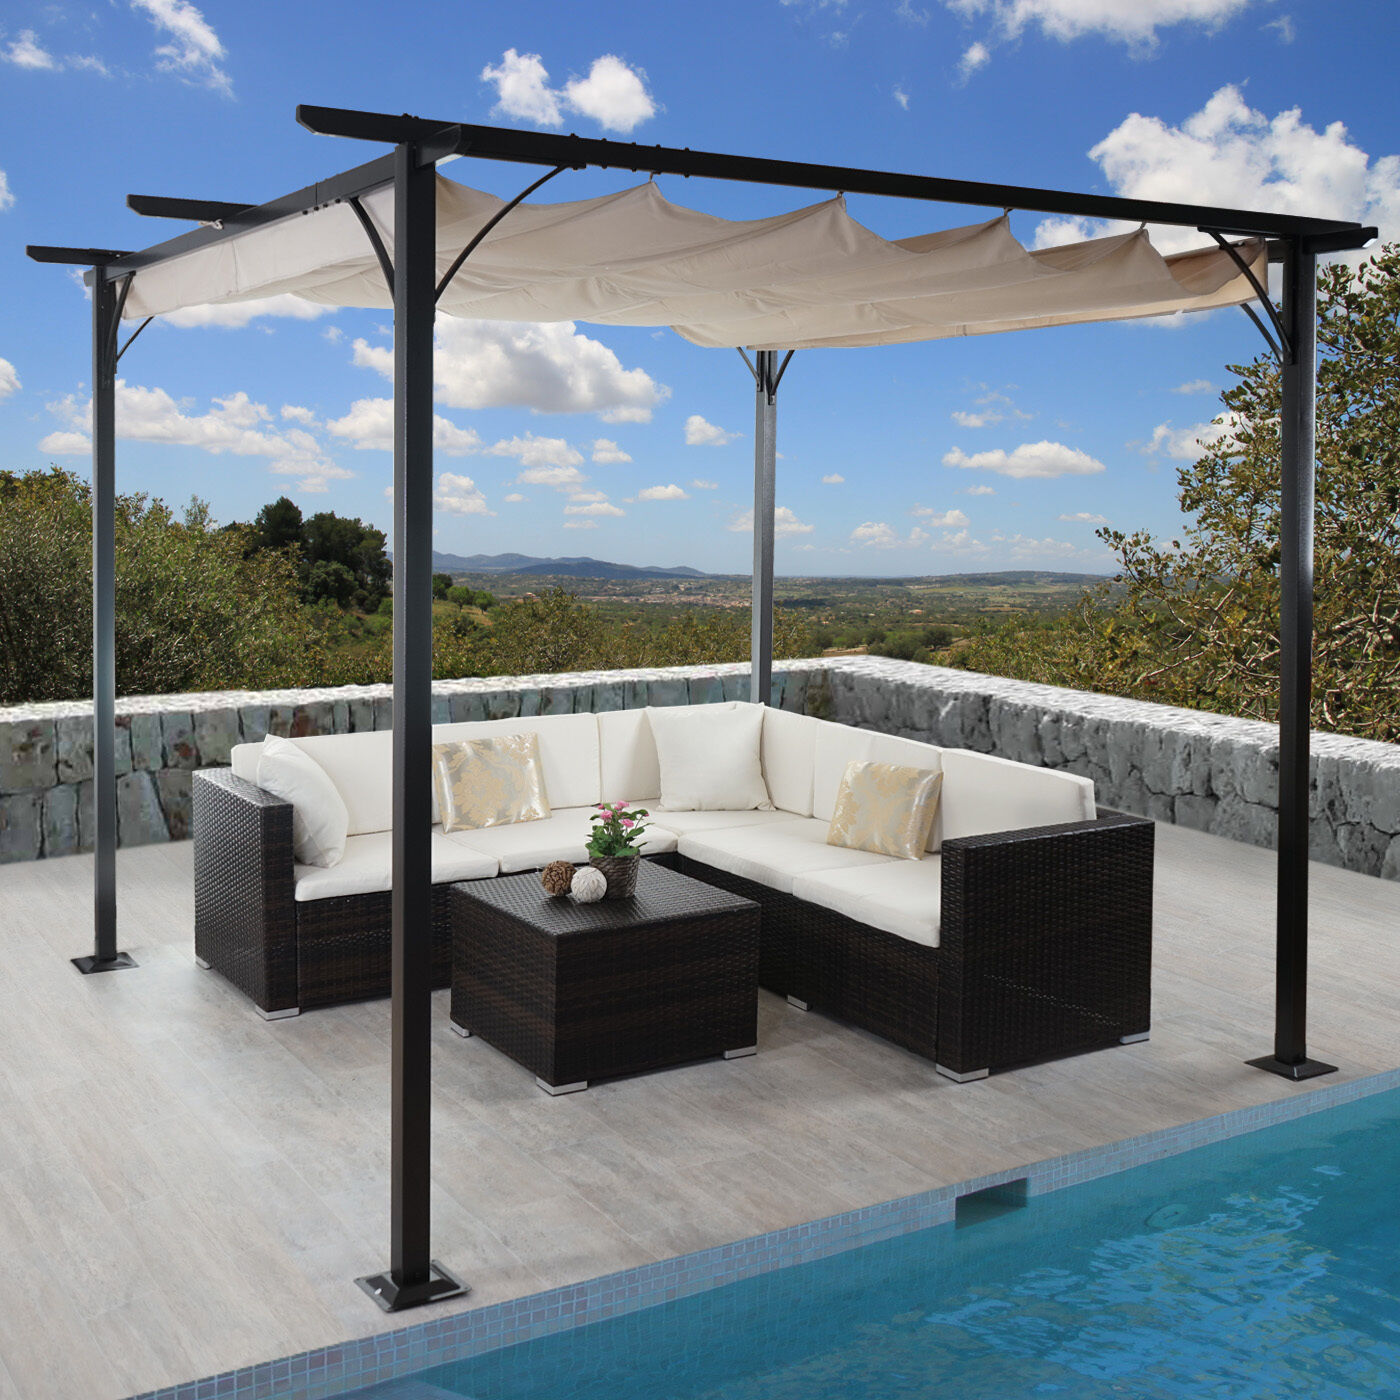 3x3 m pavillon garten pergola sonnenschutz terrassen berdachung sonnensegel mal eur 259 00. Black Bedroom Furniture Sets. Home Design Ideas